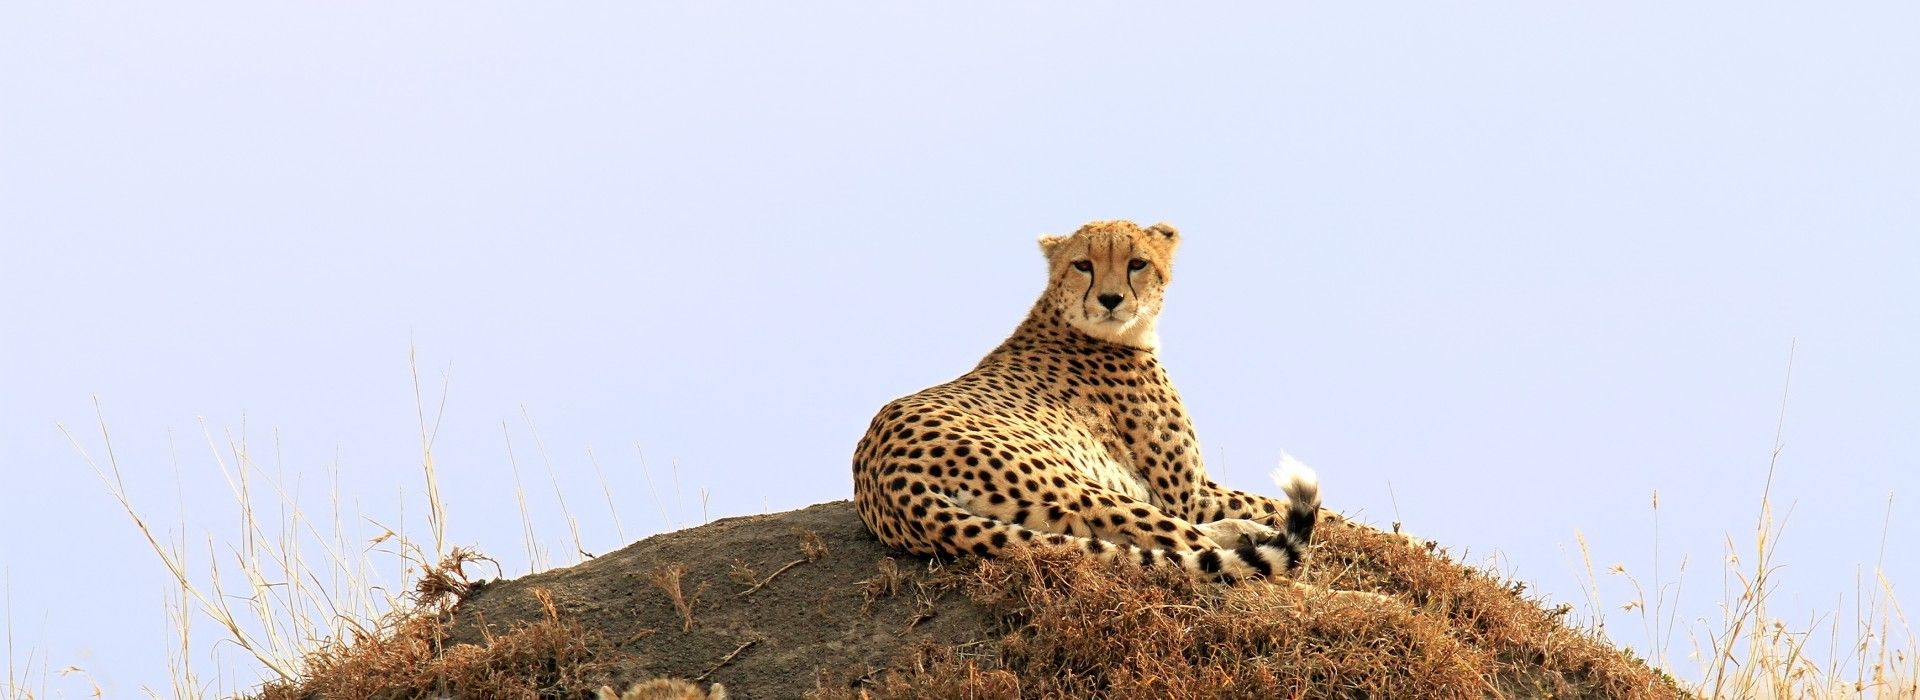 Special interests and hobbies Tours in Kenya